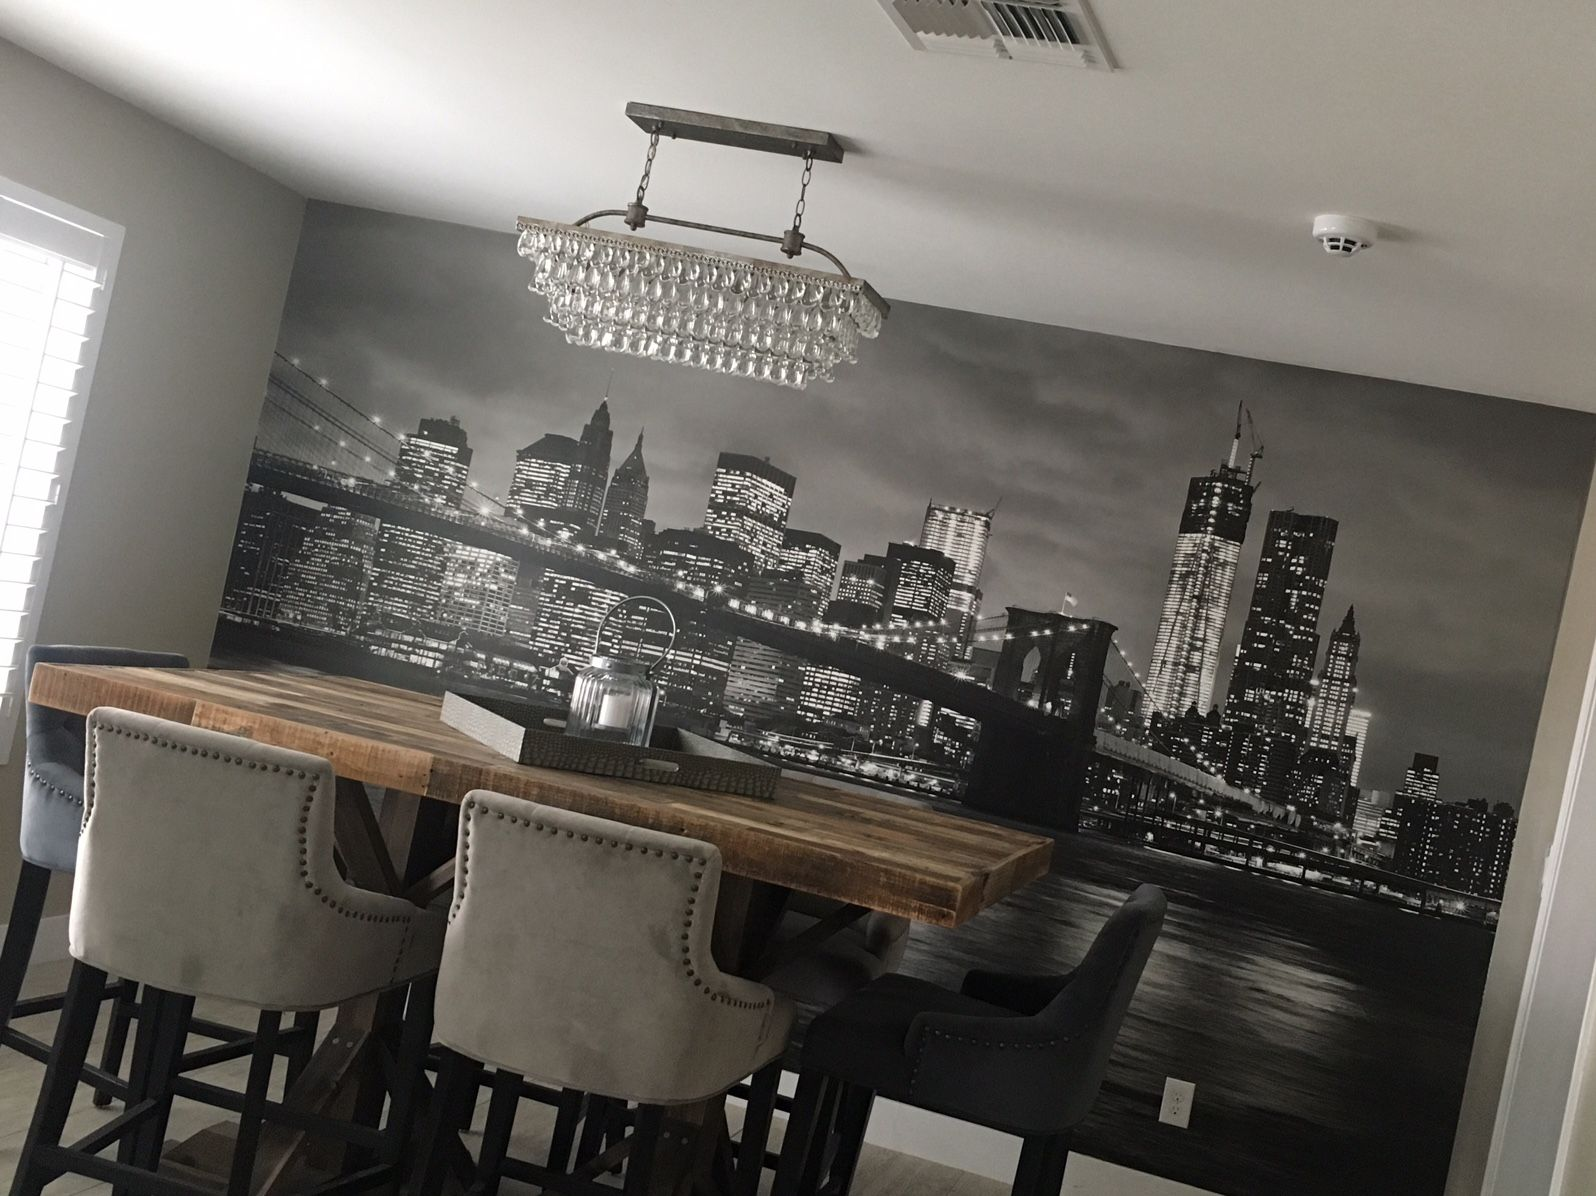 Our Customer Accented Her Dining Room With This Gorgeous Black And